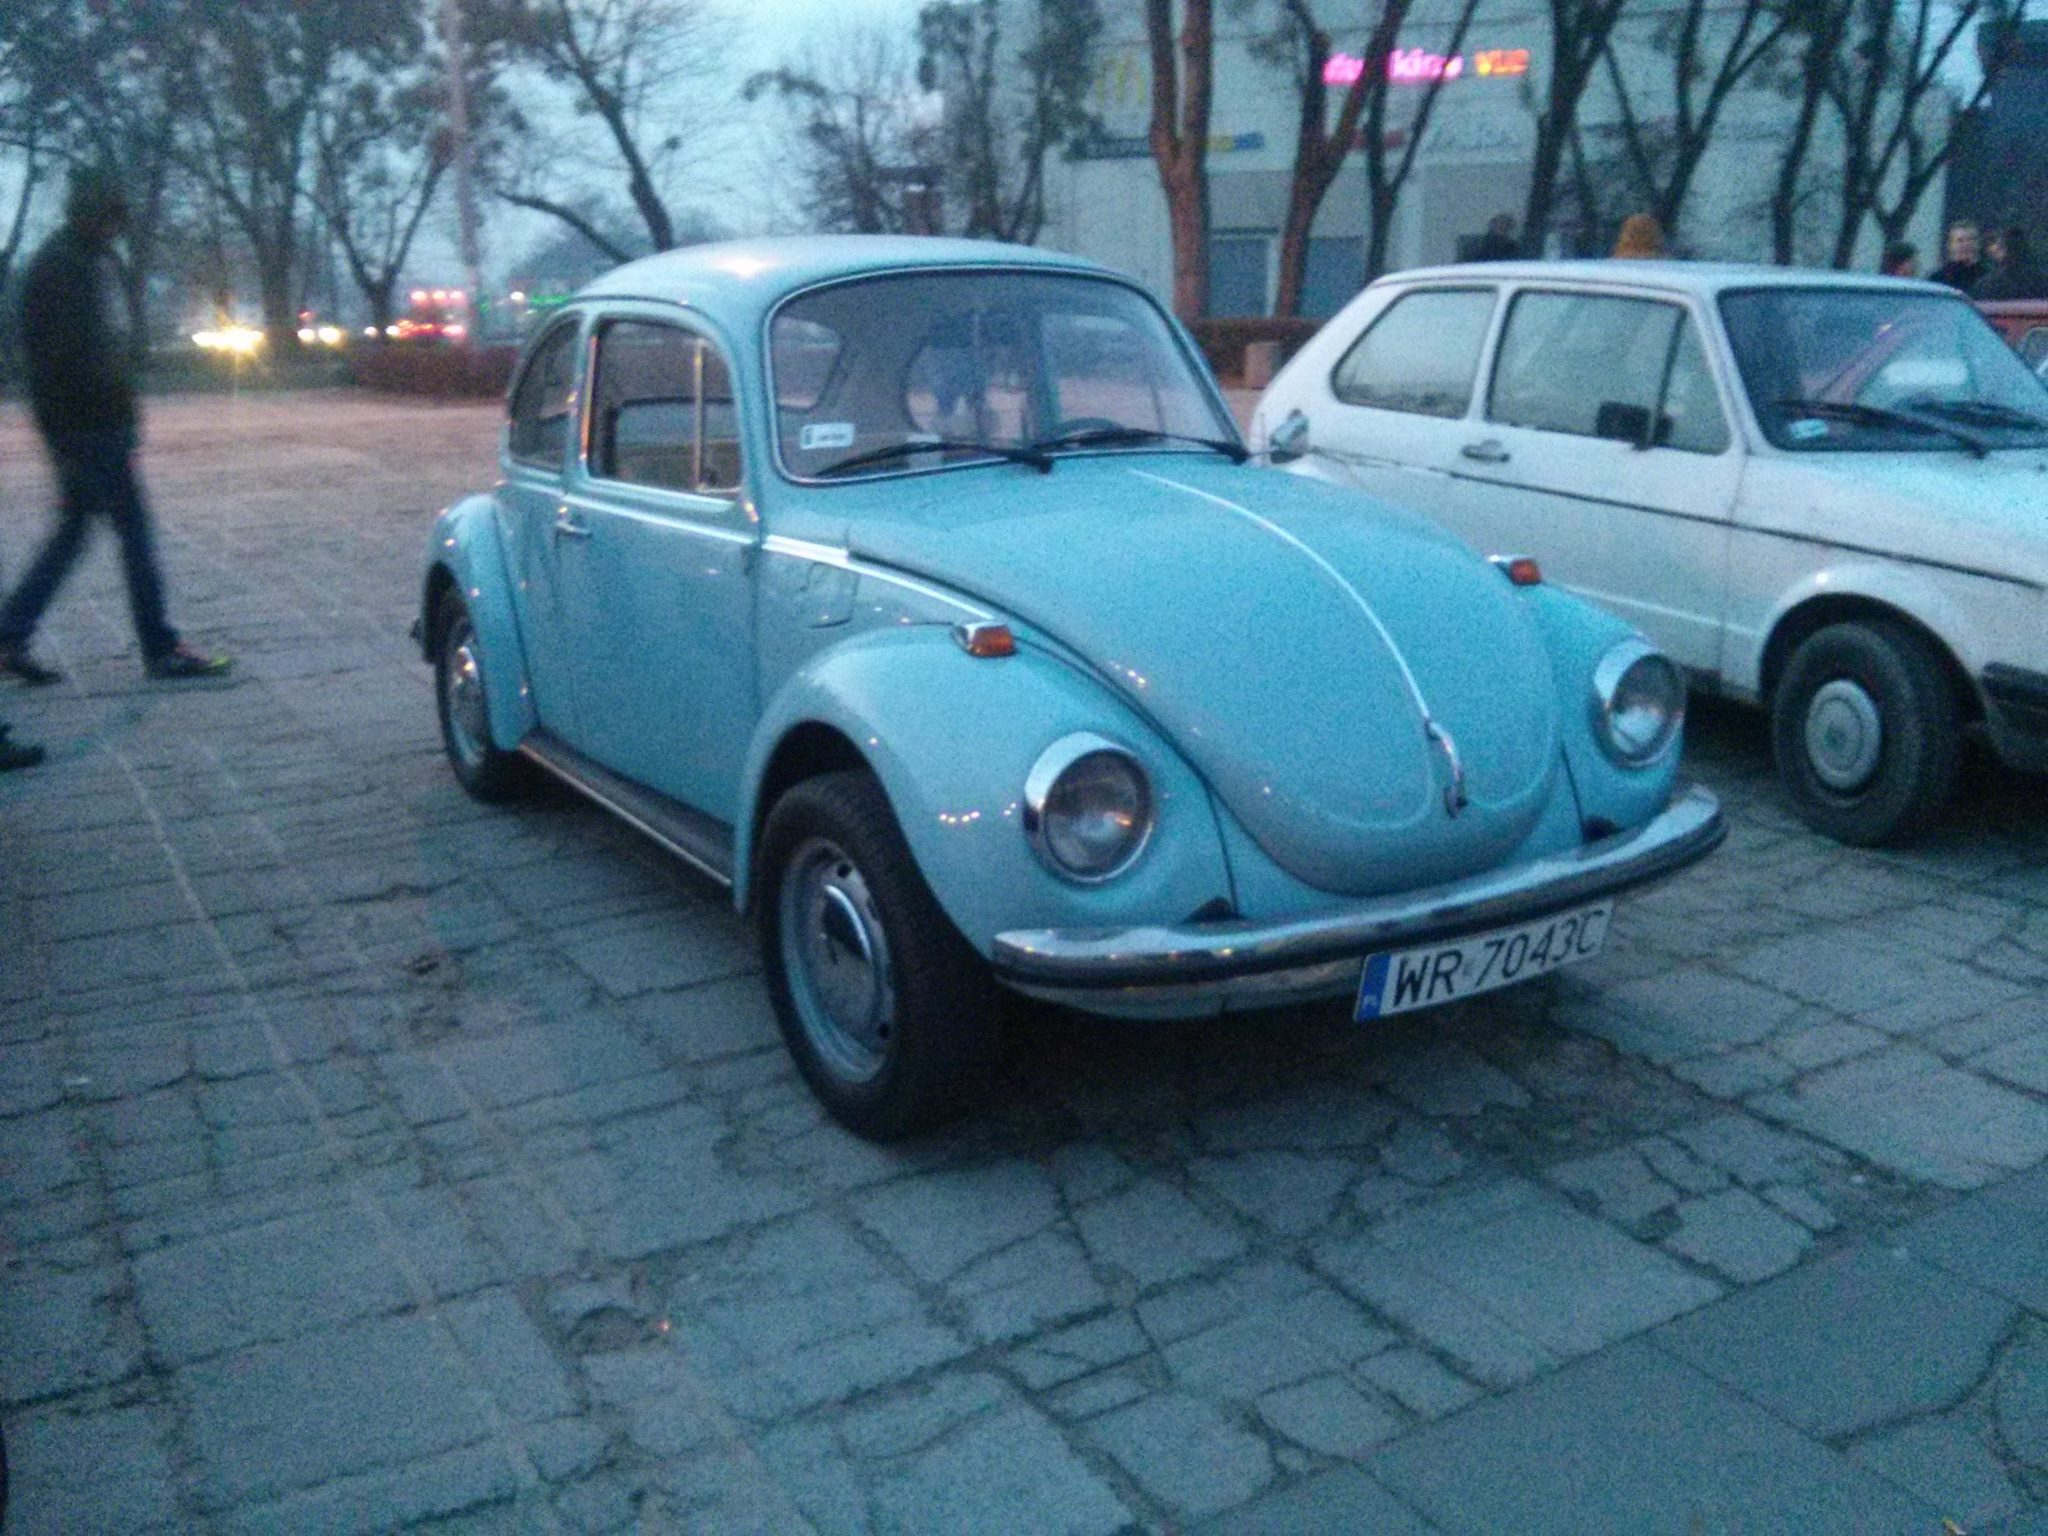 http://124coupe.pl/hosting/images/1102150263.jpg